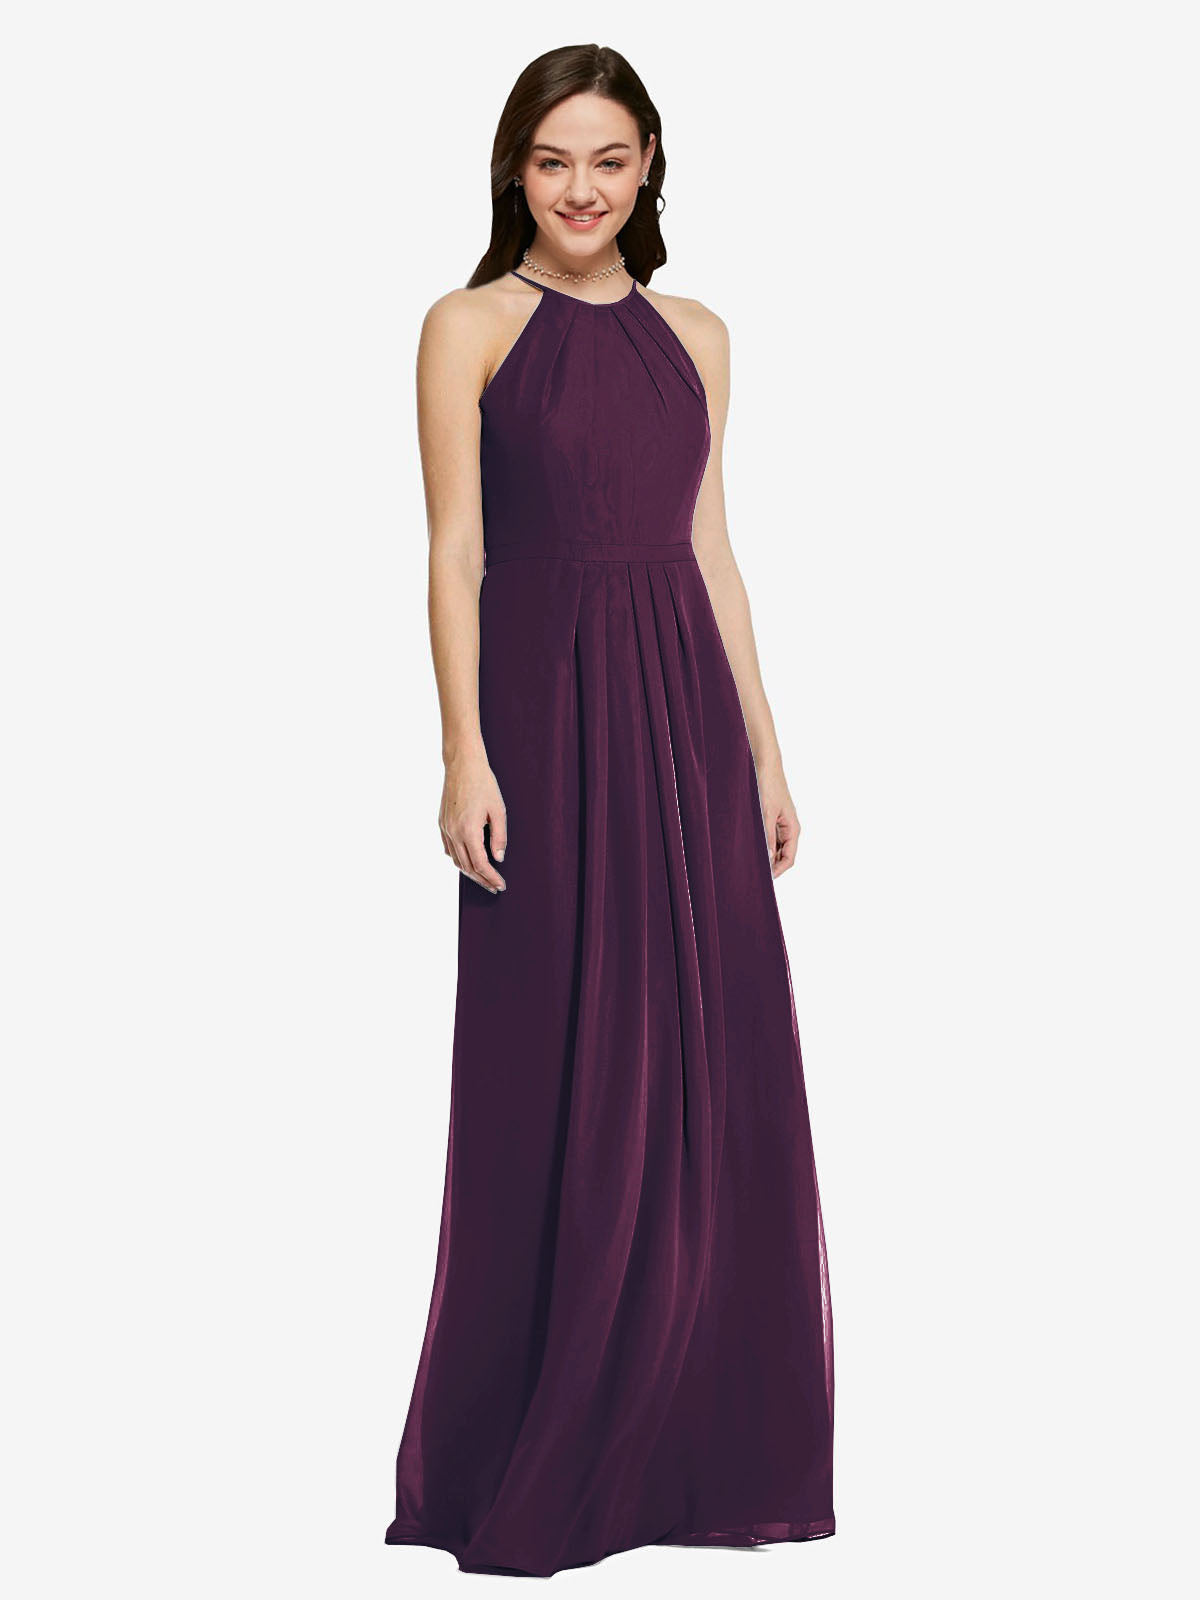 Long Sheath High Neck Halter Sleeveless Grape Chiffon Bridesmaid Dress Koloti